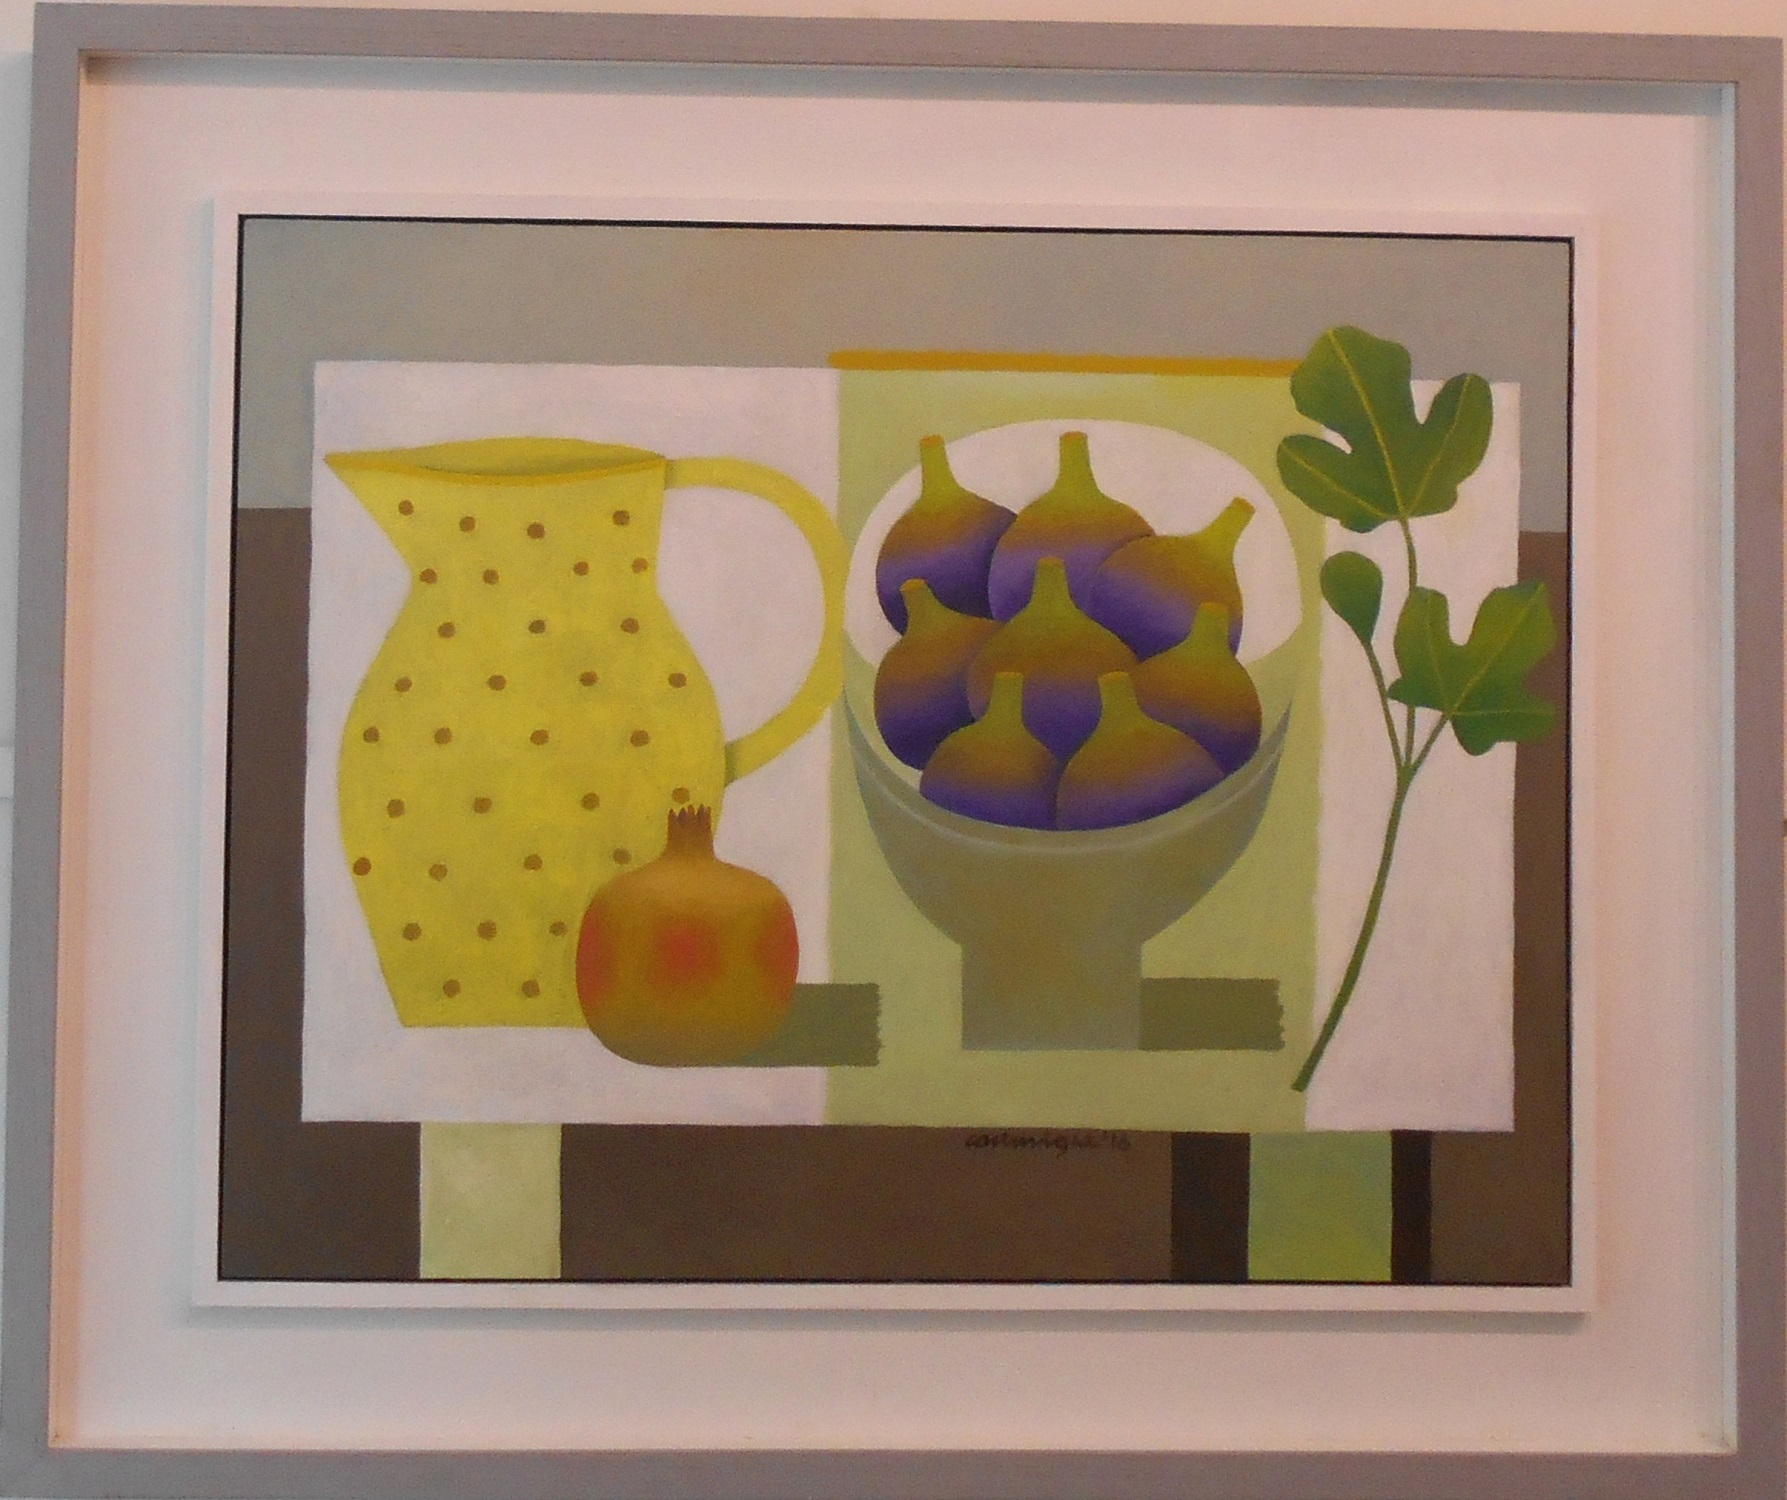 Still Life with Spotted Jug and Figs  oil on board  58.5 x 45.5 cm  SOLD